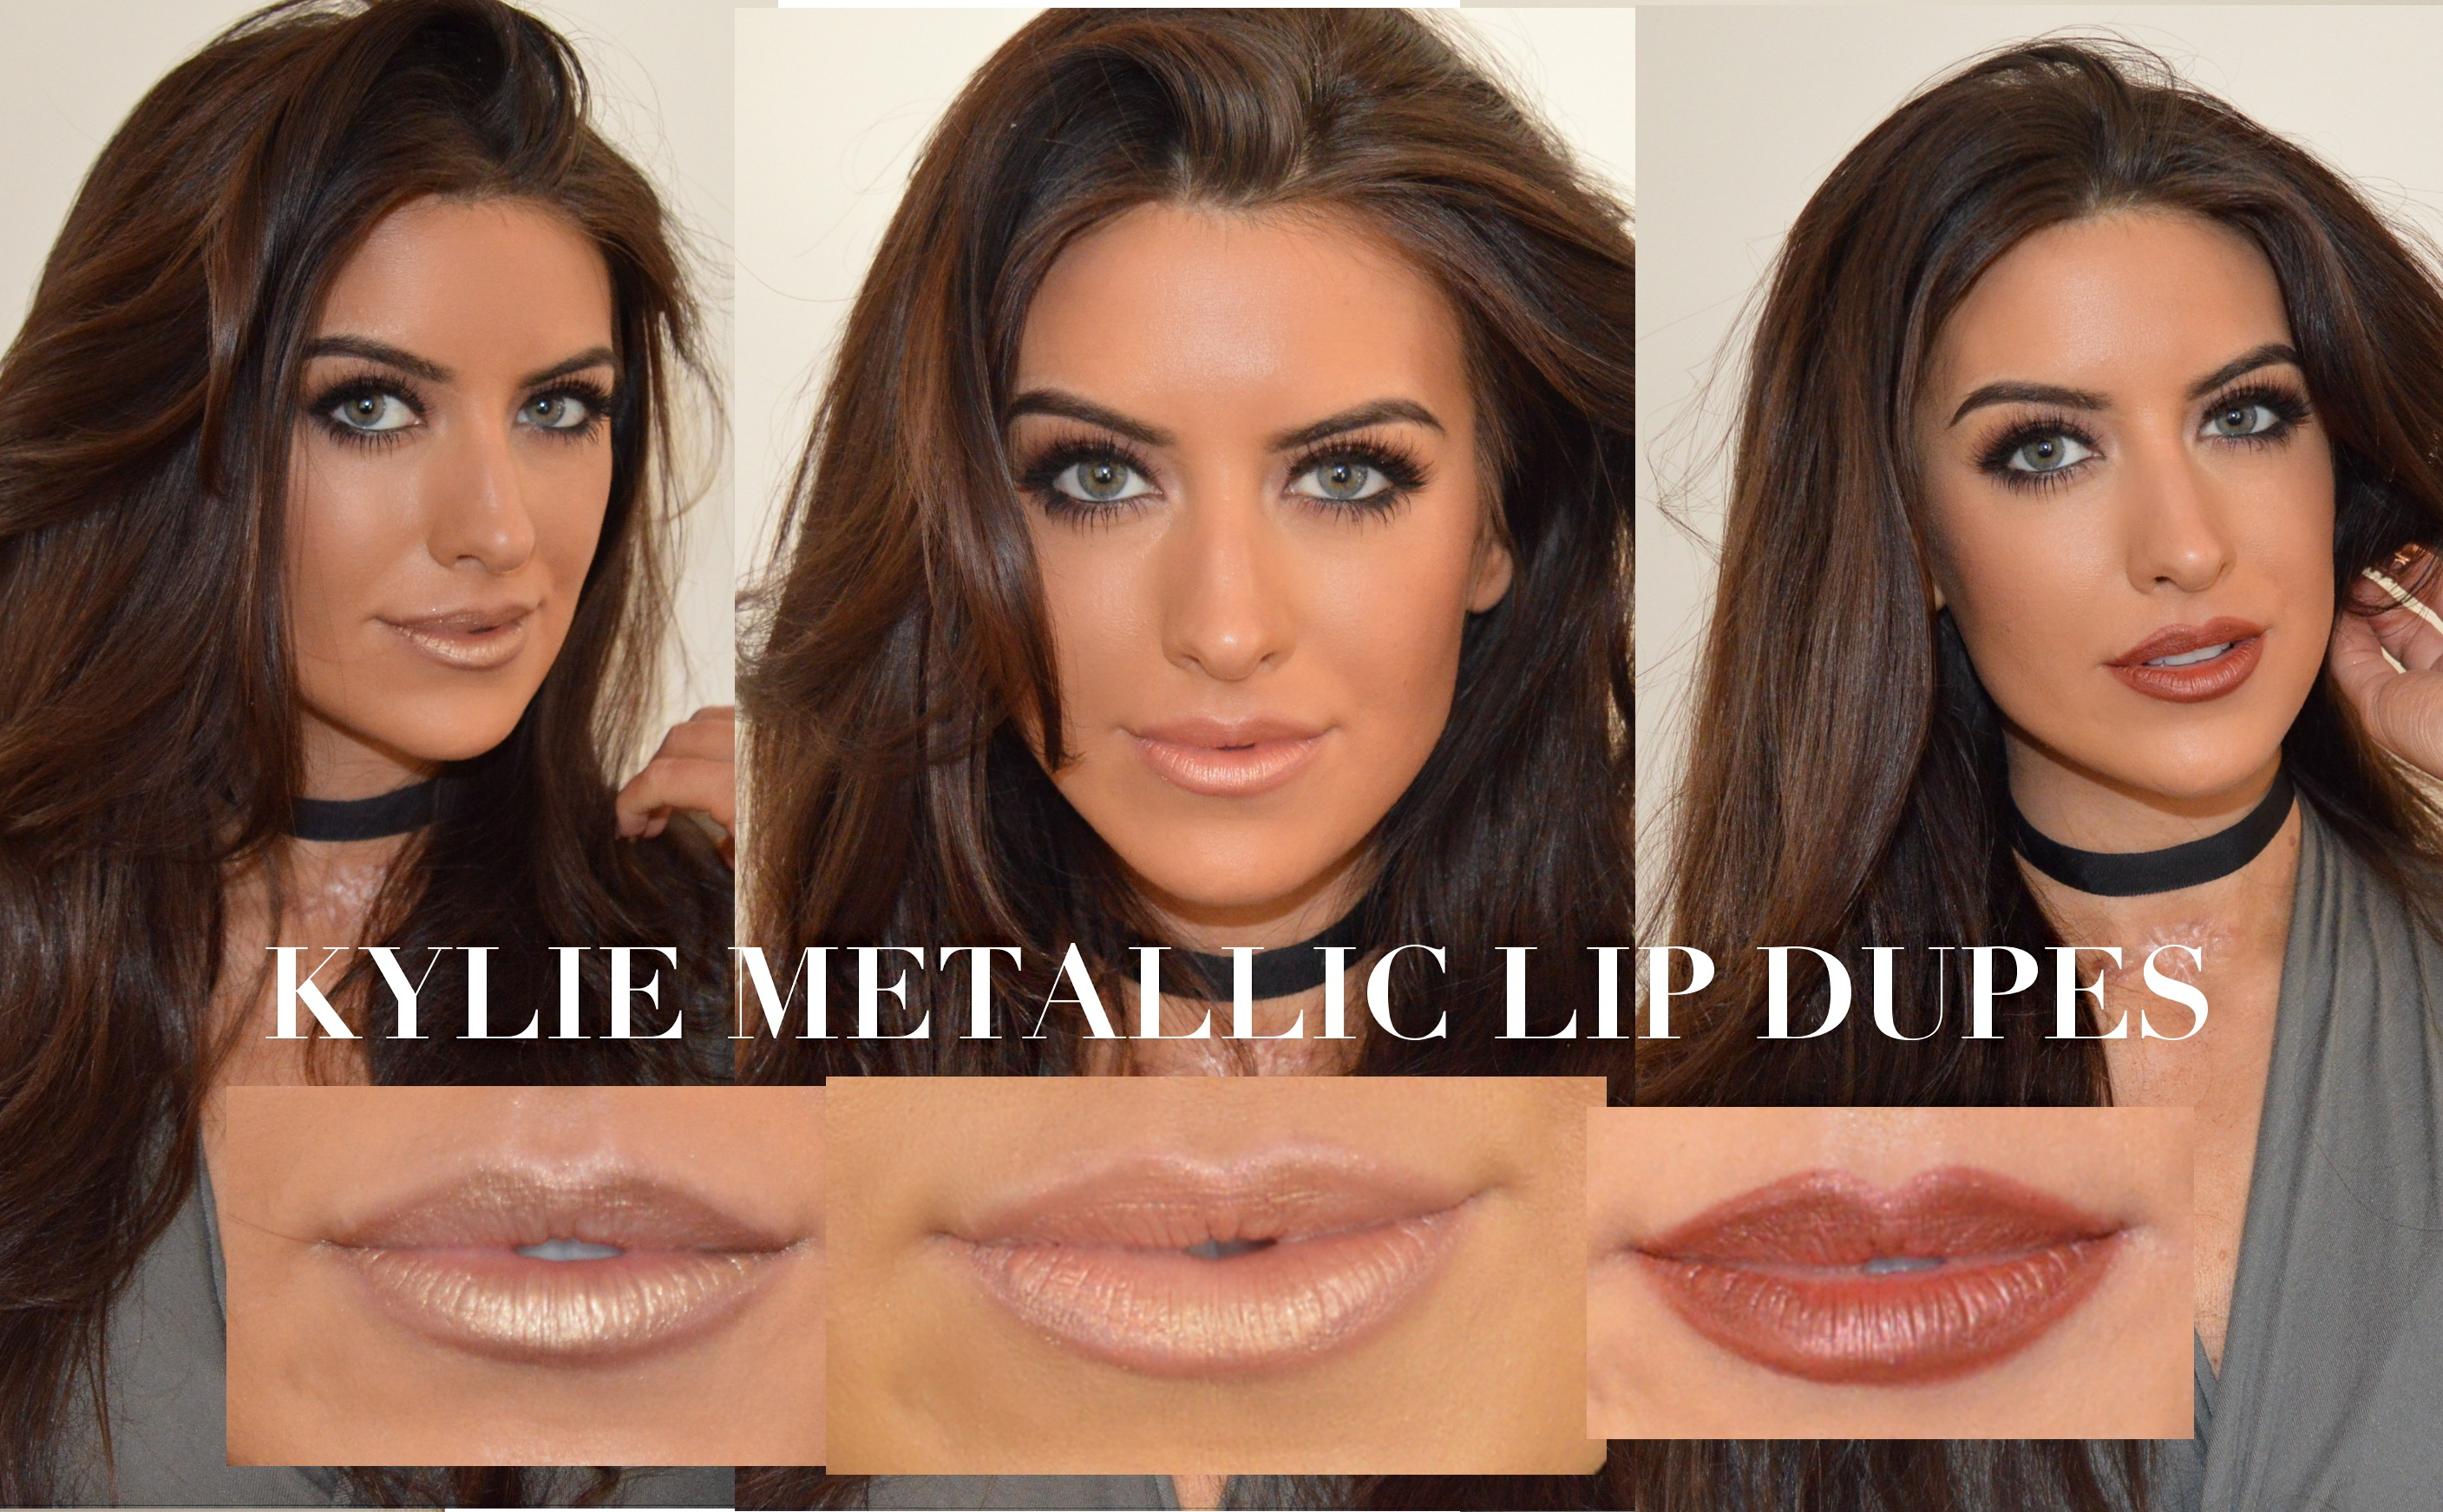 kylie metallic lip dupes